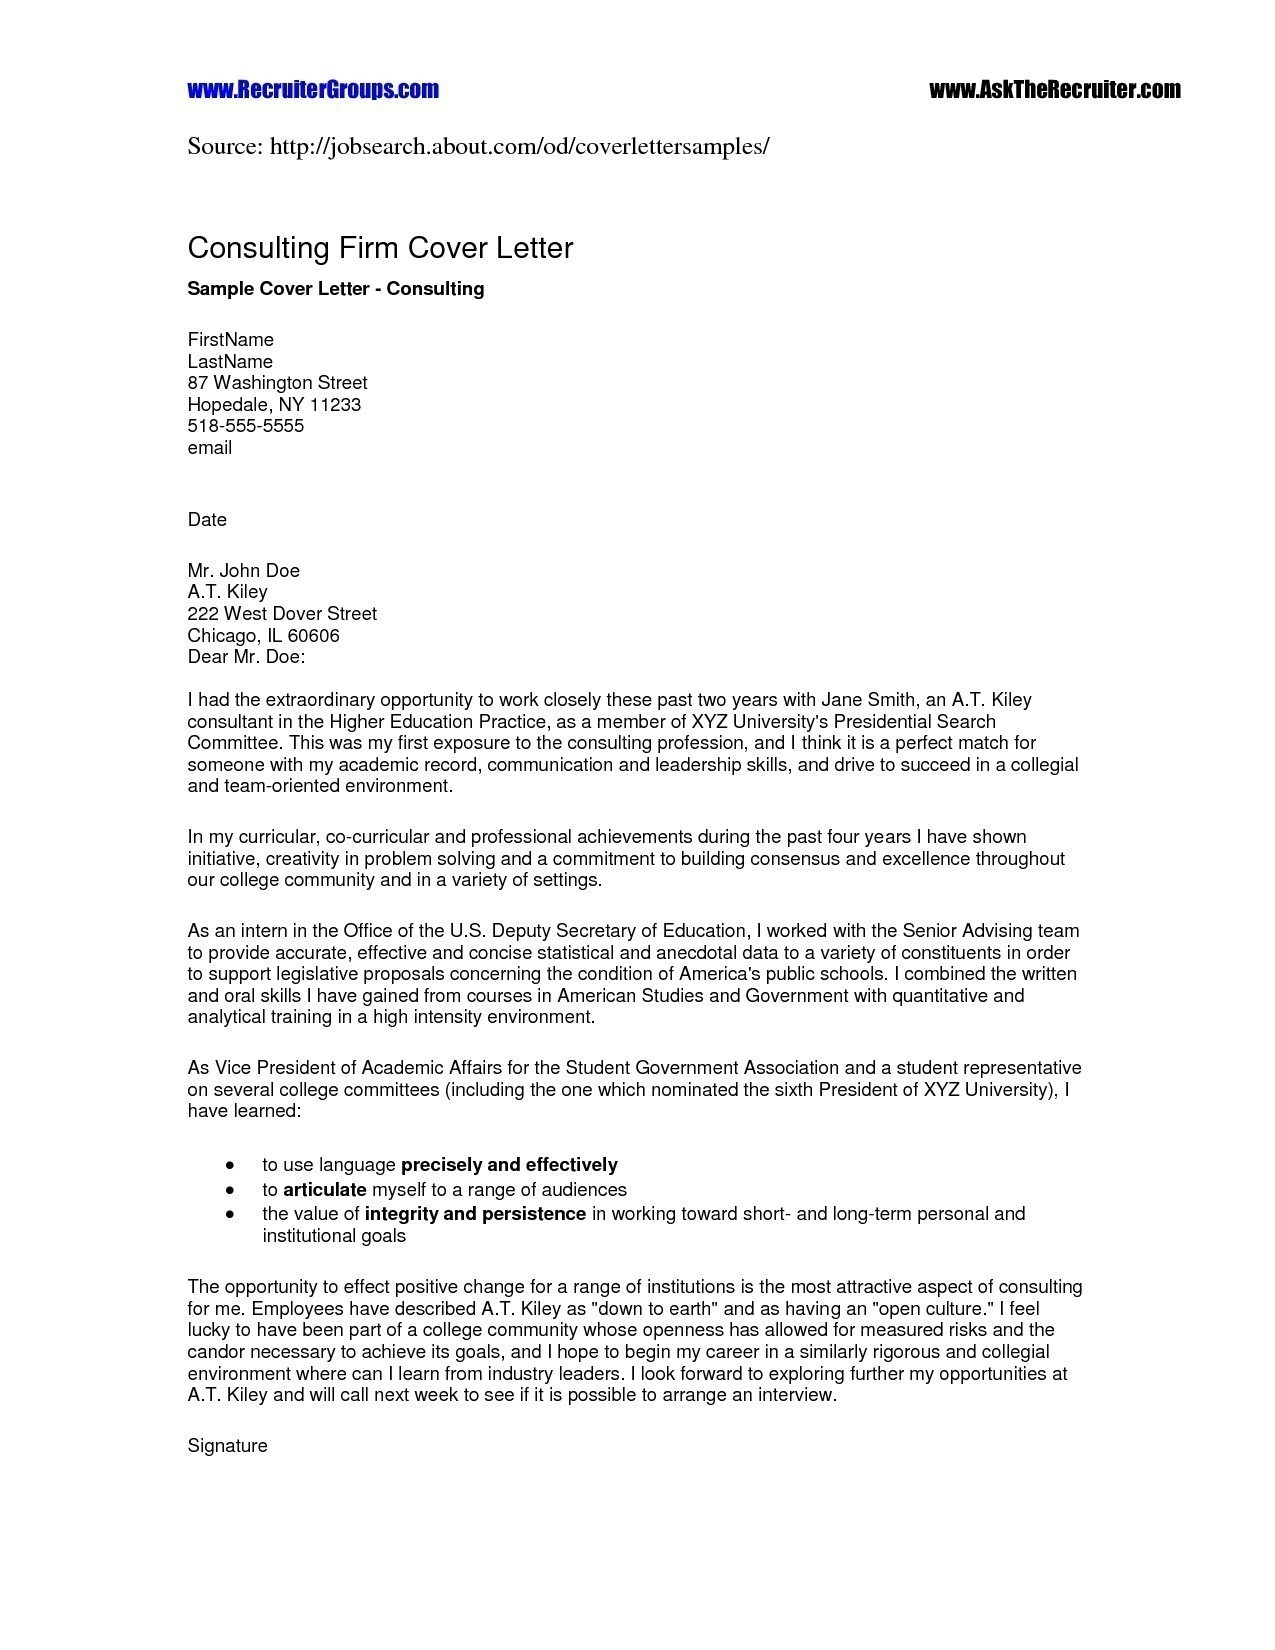 Job Offer Letter Template Doc - How to Write Job Fer Letter Fresh Job Fer Letter Sample Best Job